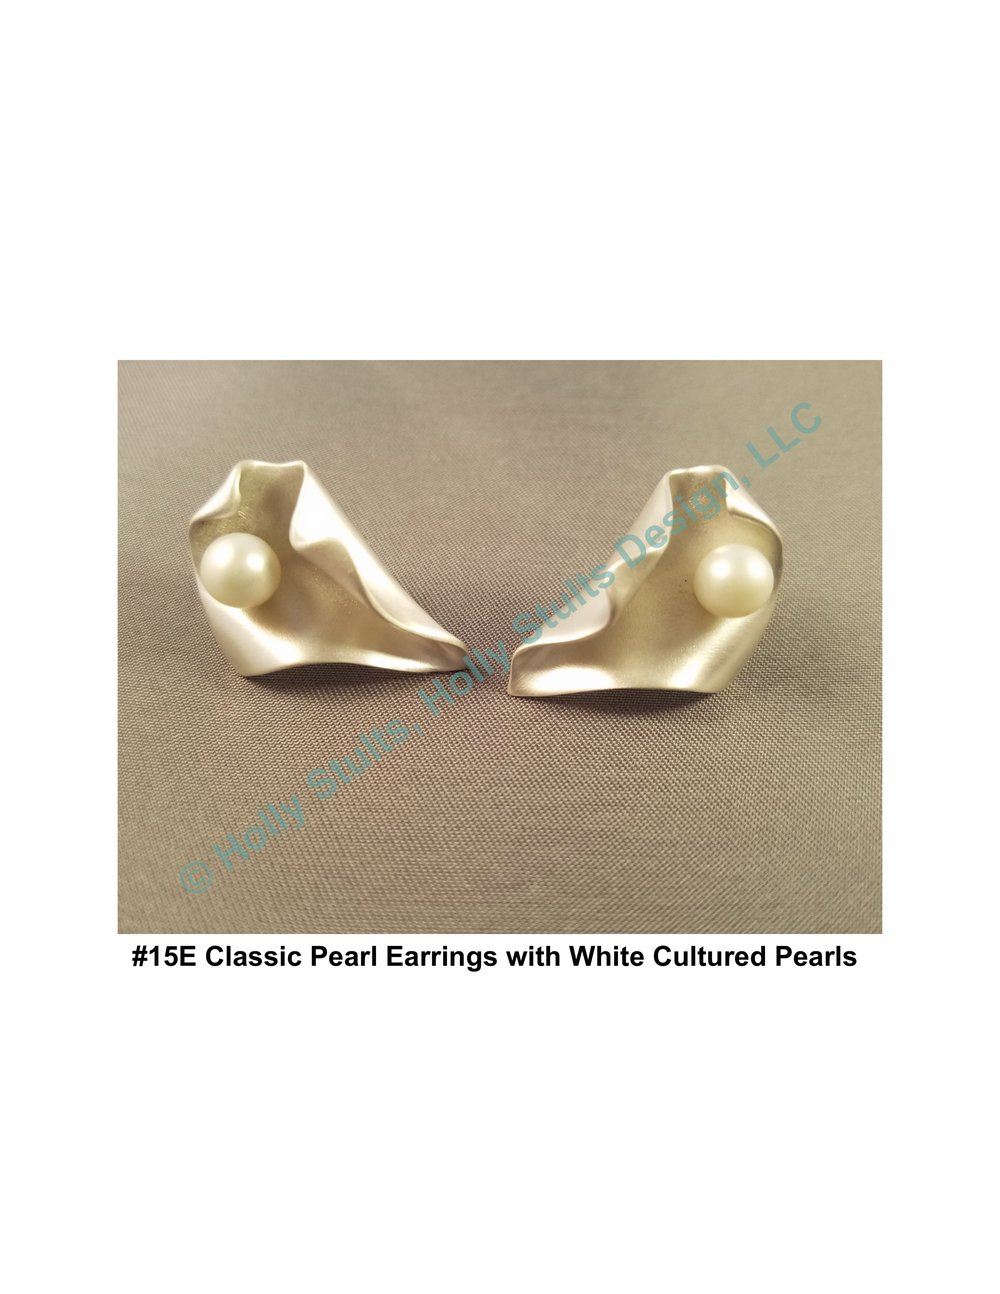 #15E Classic Pearl Earrings with White Cultured Pearls.jpg